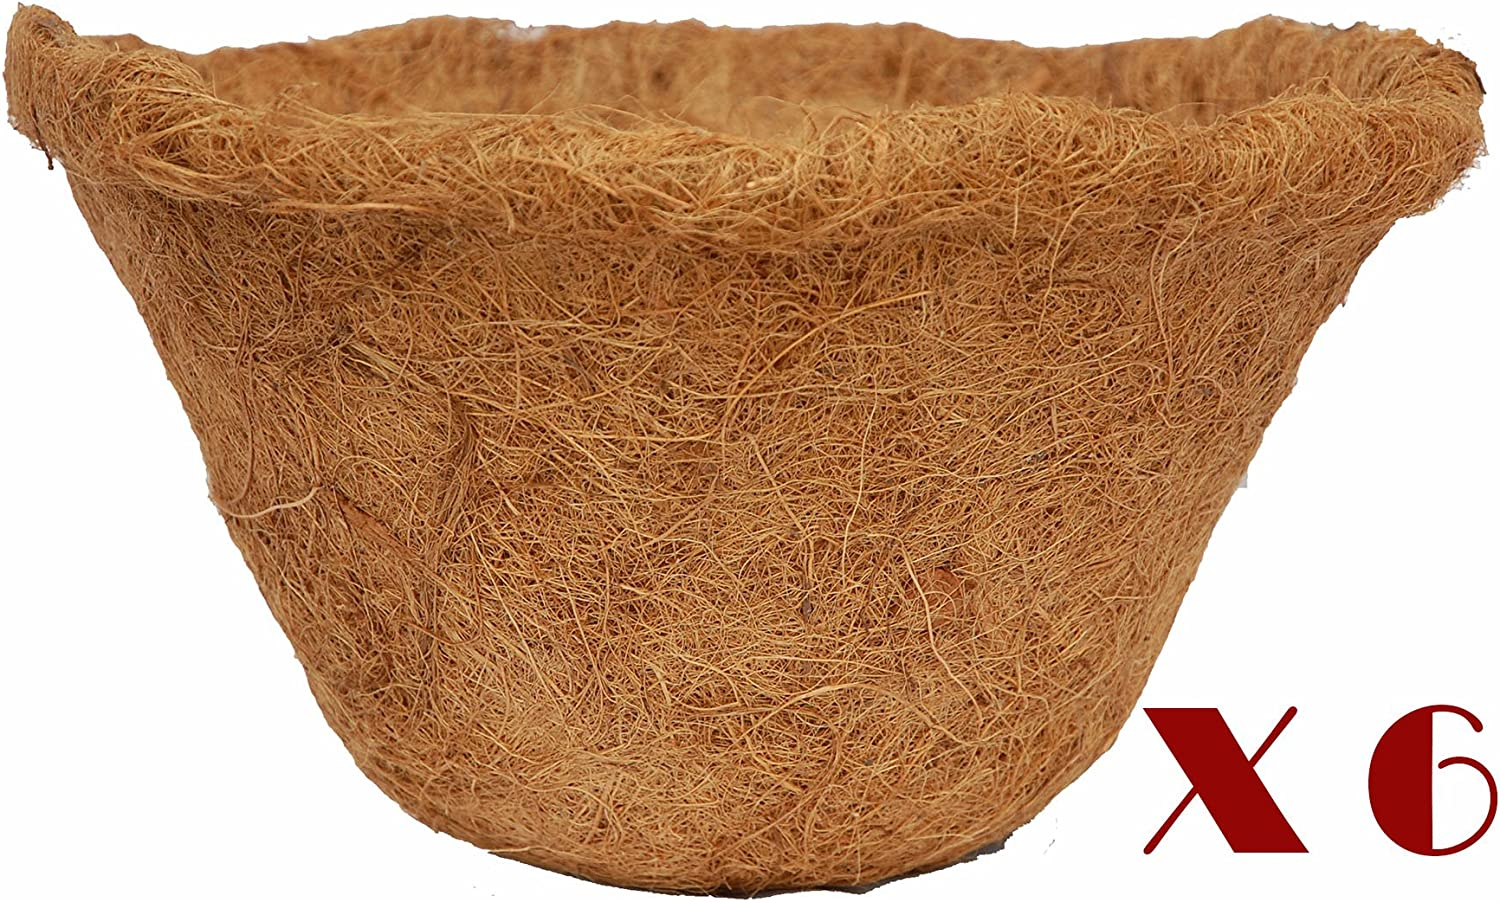 12-inch Hand Formed Hanging Basket Coco Fiber Liner with Water Retainer C417L-6 – Pack of 6 Liners